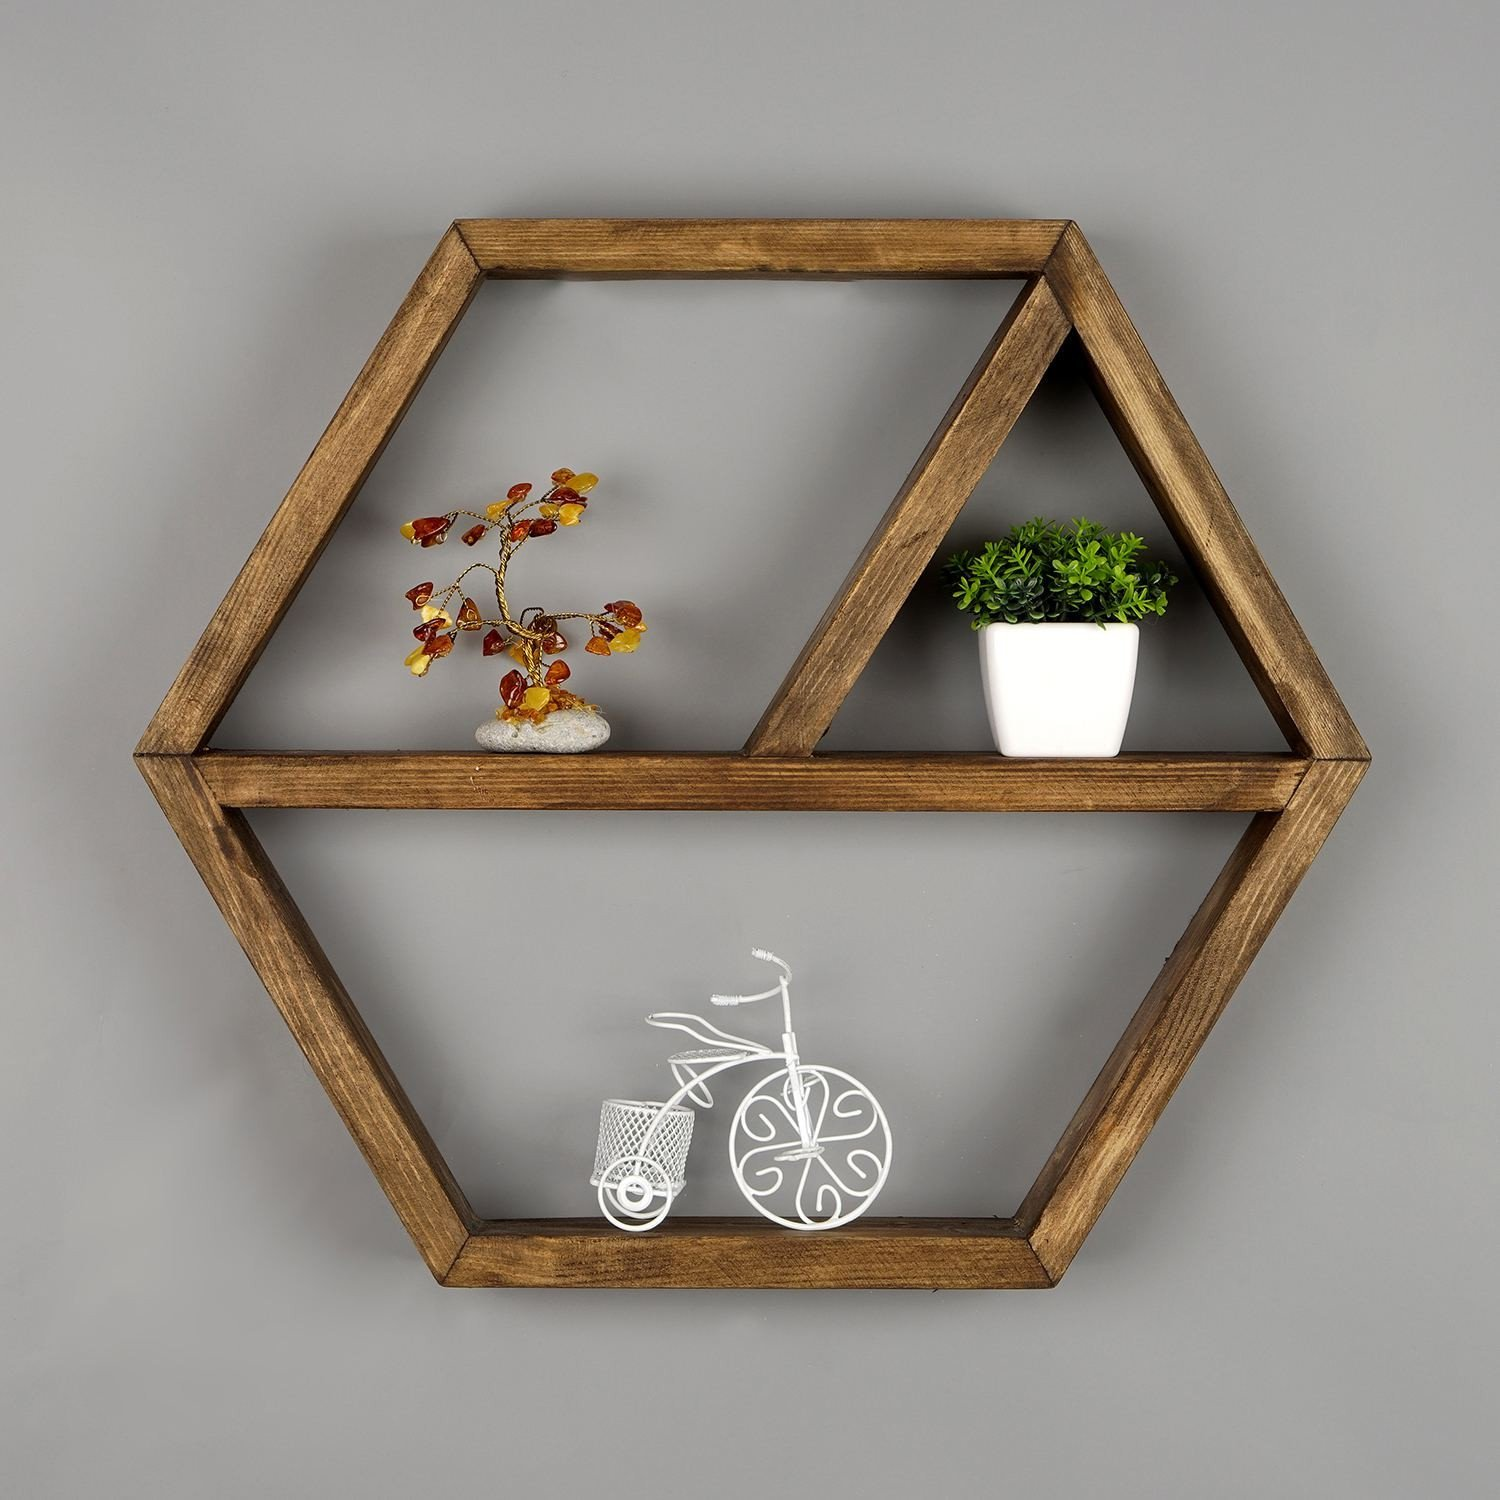 Wooden Hexagon Geometrical Shapes Wall Shelf, 100% Melamine Coated Particle Board - Size (15.7'' x 13.8'' x 2.4''), Easy to Hang with Invisible Brackets, Wall Mounted Floating Shelves for Home & Office